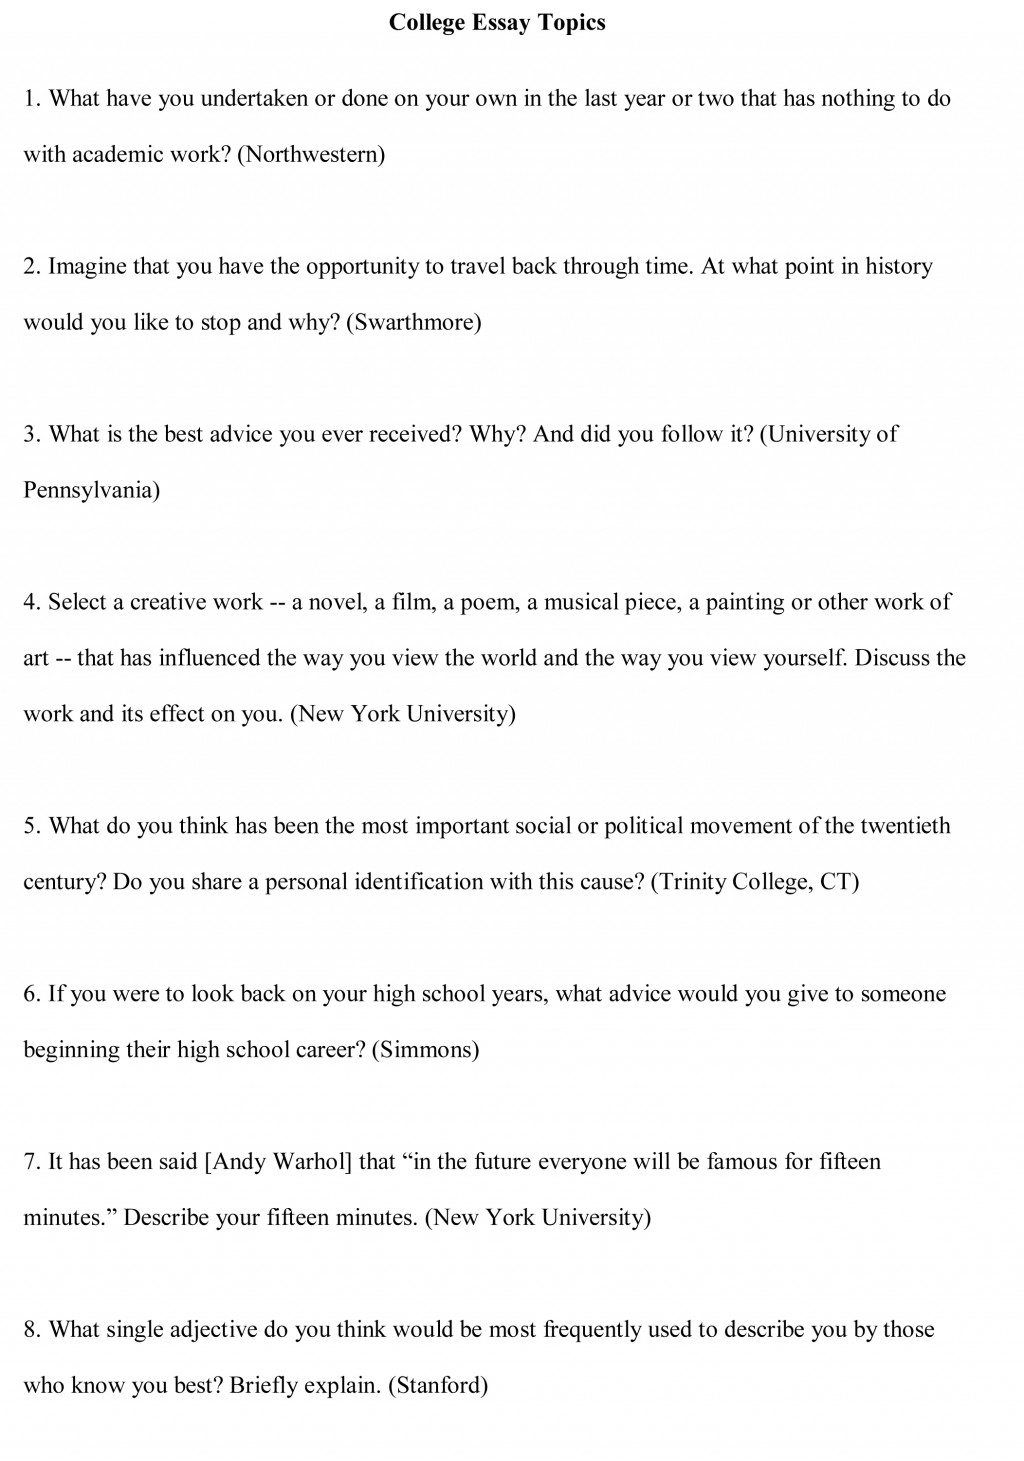 003 College Essay Topics Free Sample1 Prompts Impressive Uc Texas And Examples Large